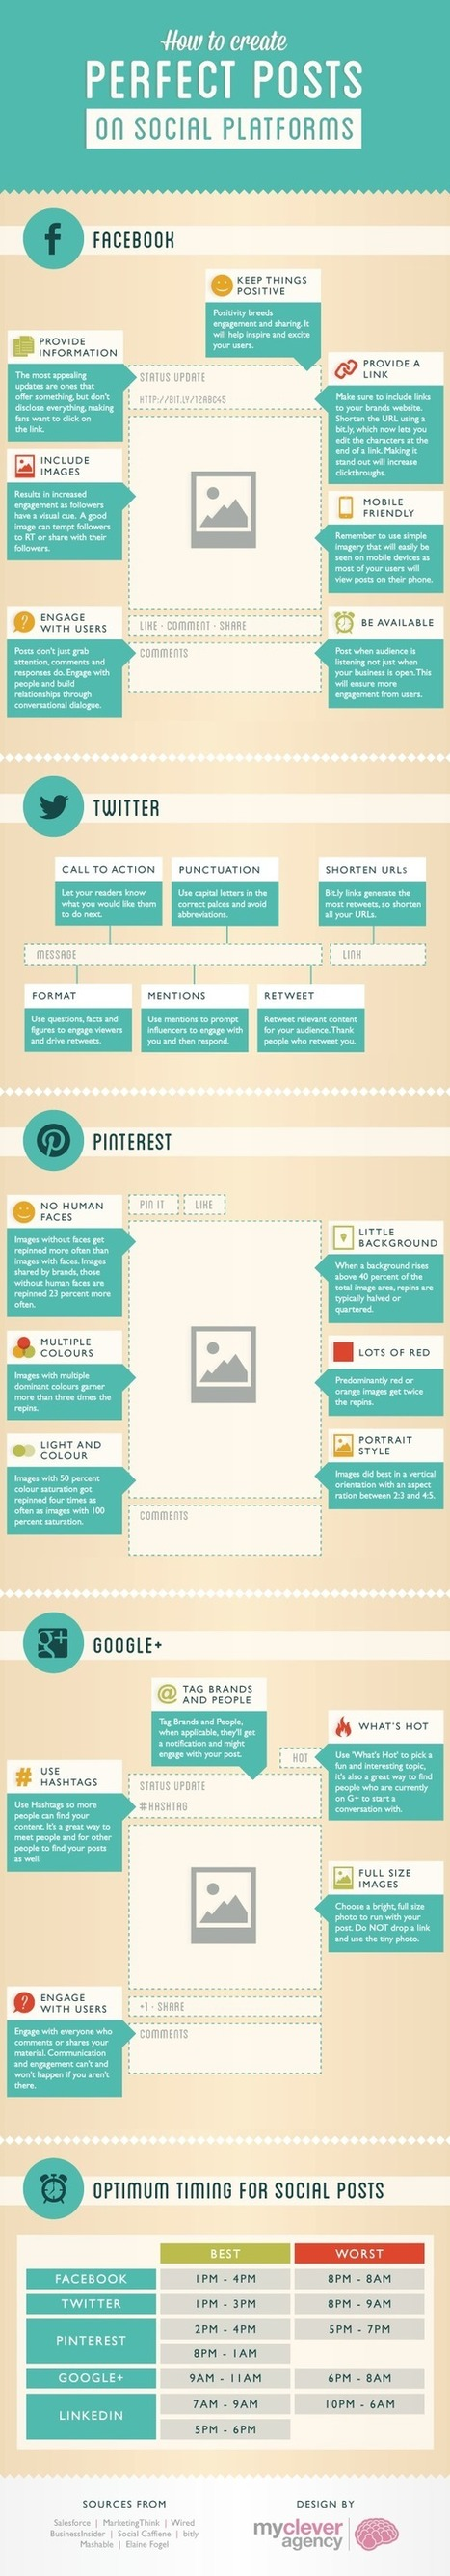 How To Create Perfect Posts On Social Platforms | Business 2 Community | World's Best Infographics | Scoop.it